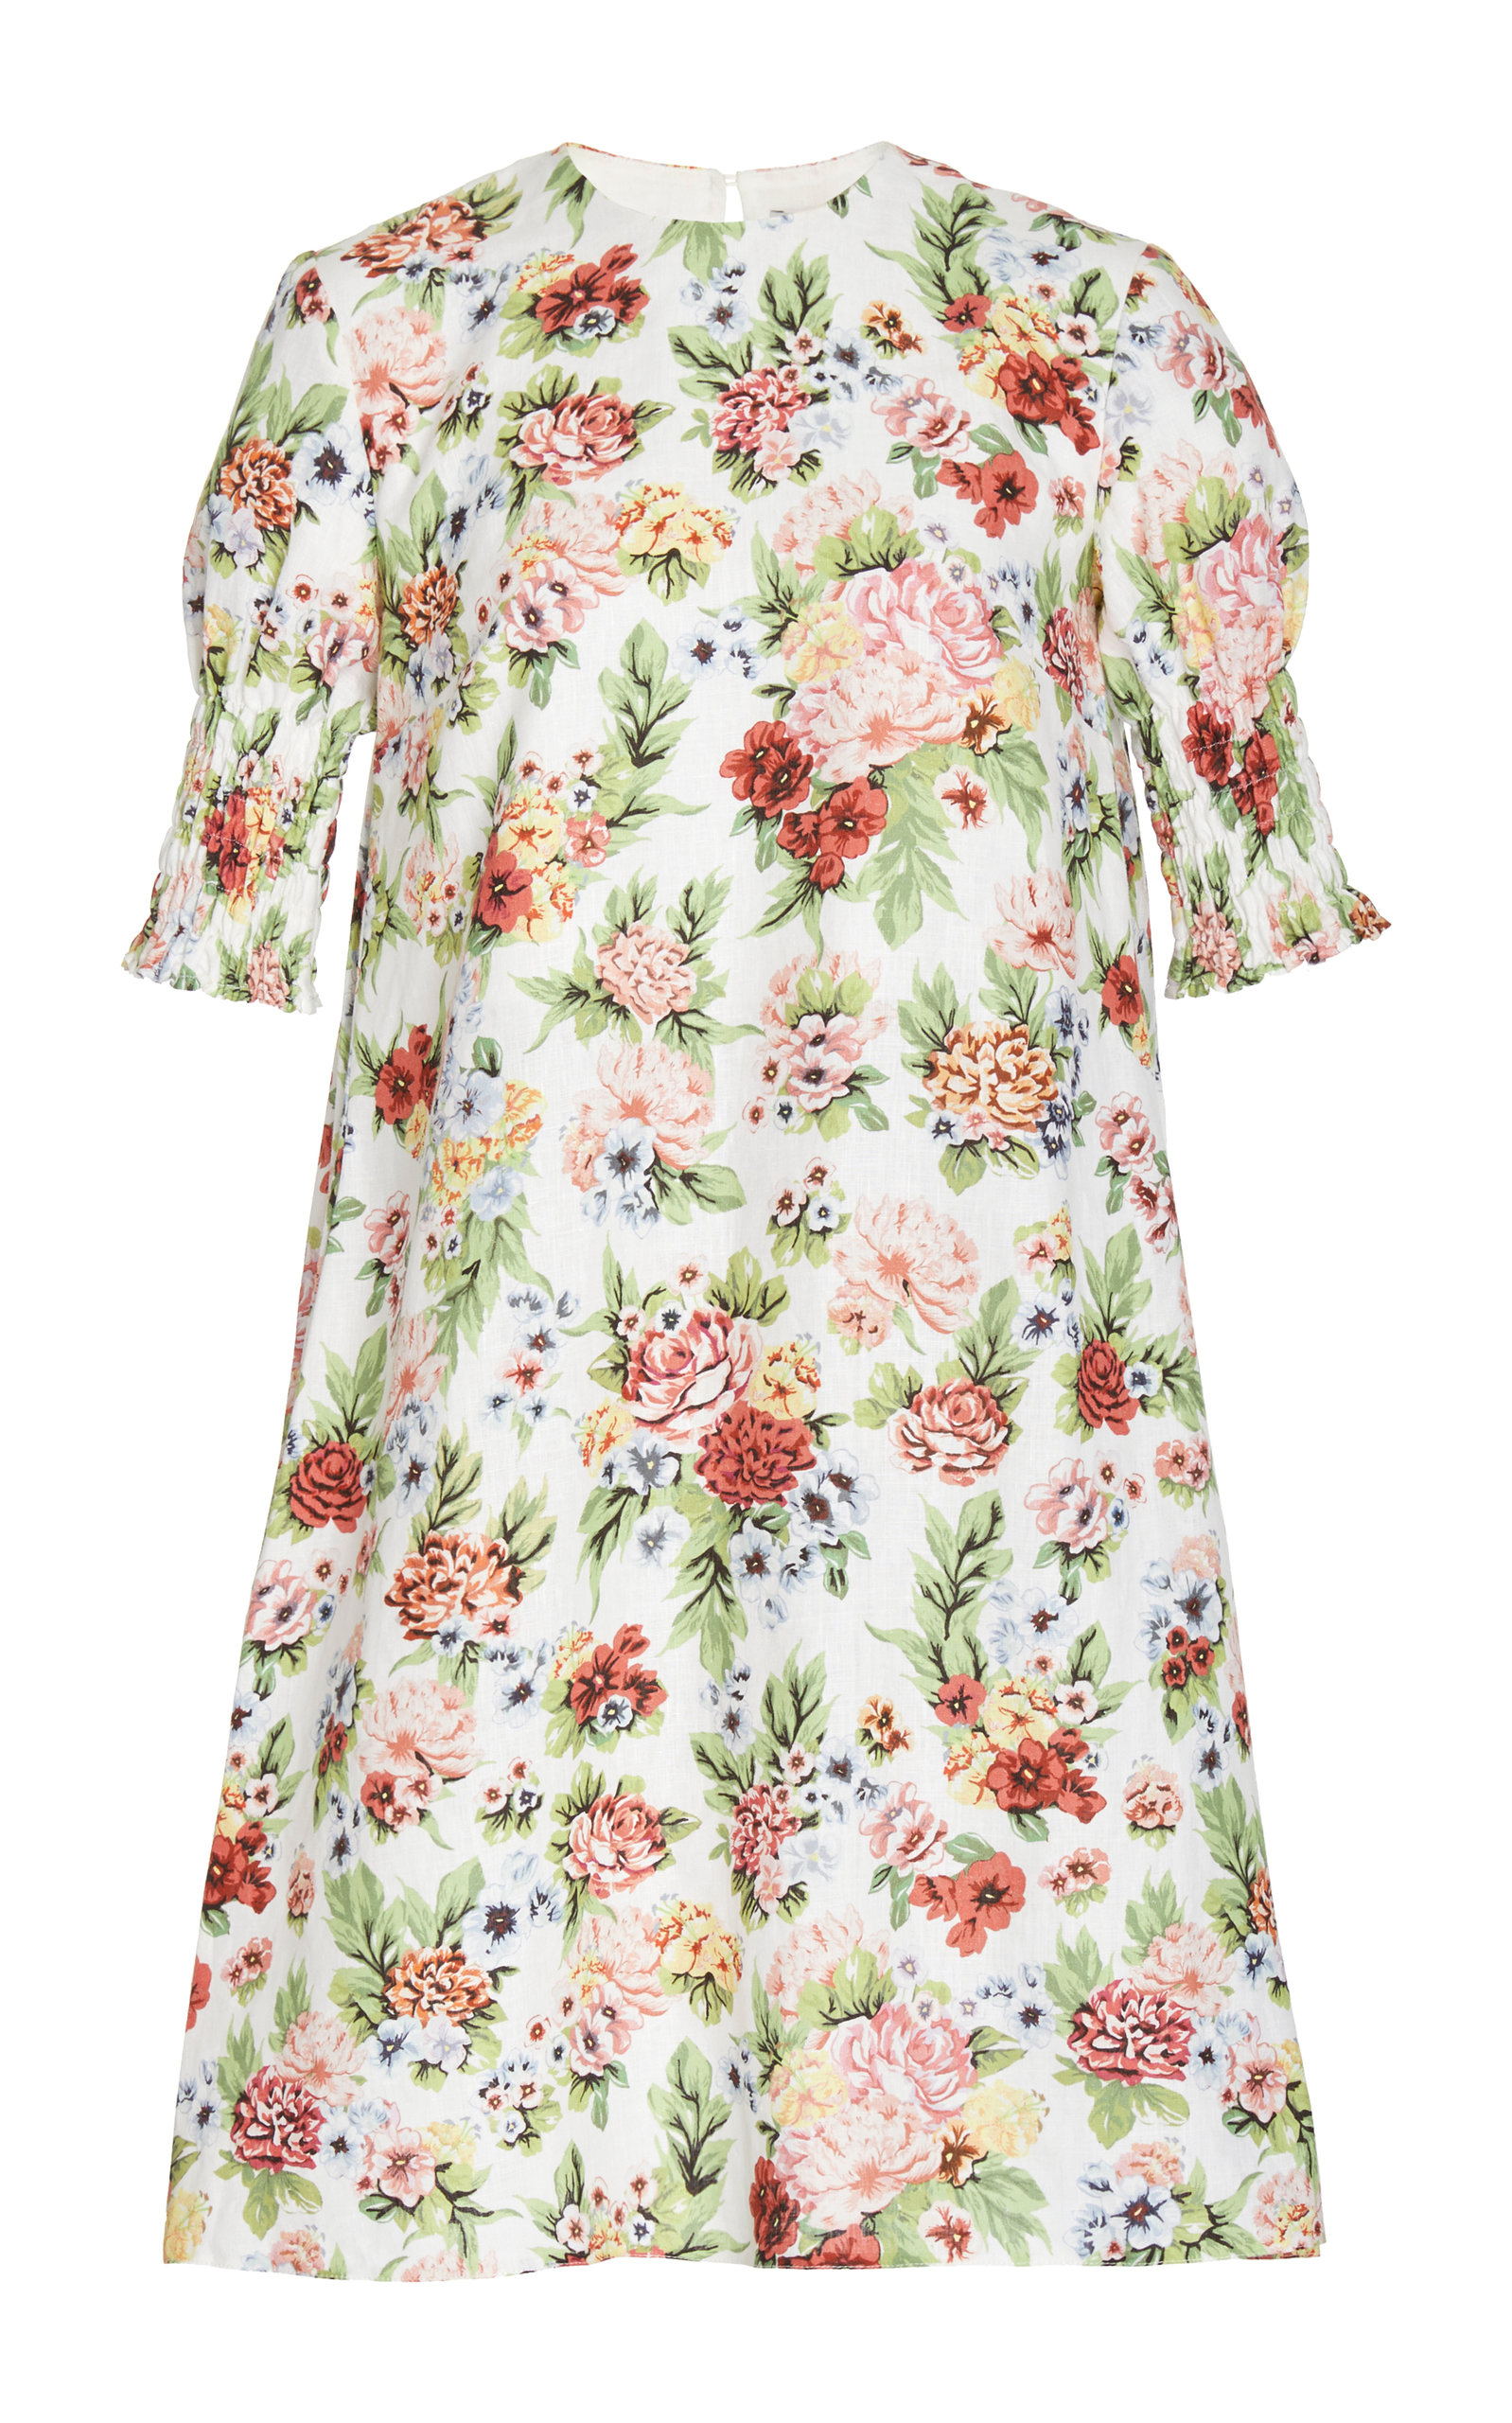 EMILIA WICKSTEAD M'O EXCLUSIVE FLORAL ELMA SHORT DRESS